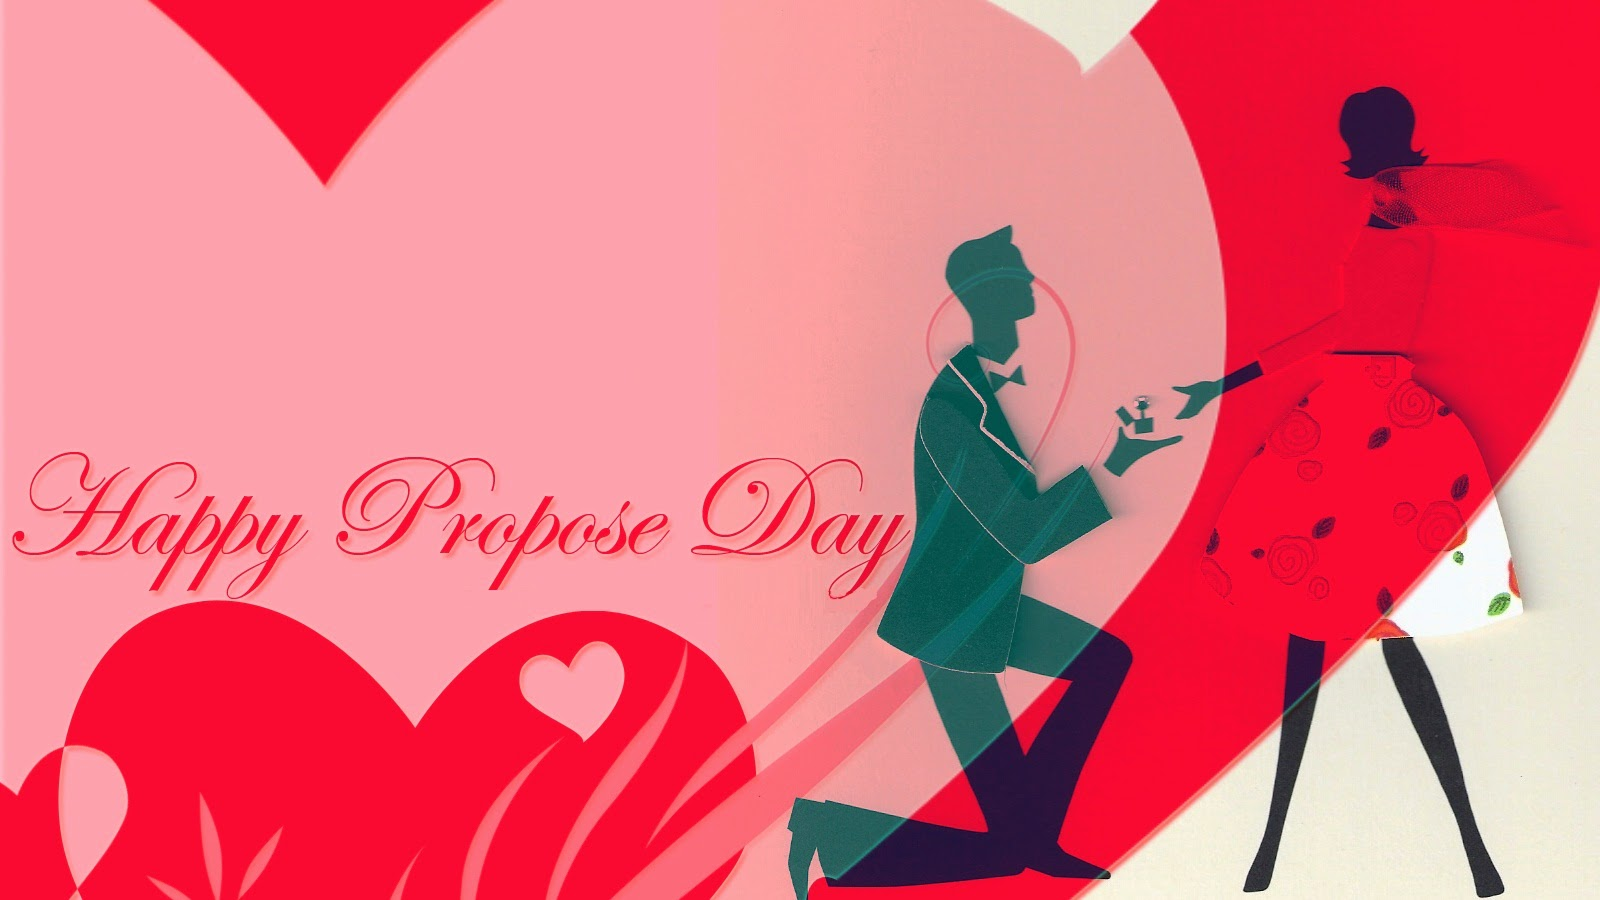 happy propose day 2015